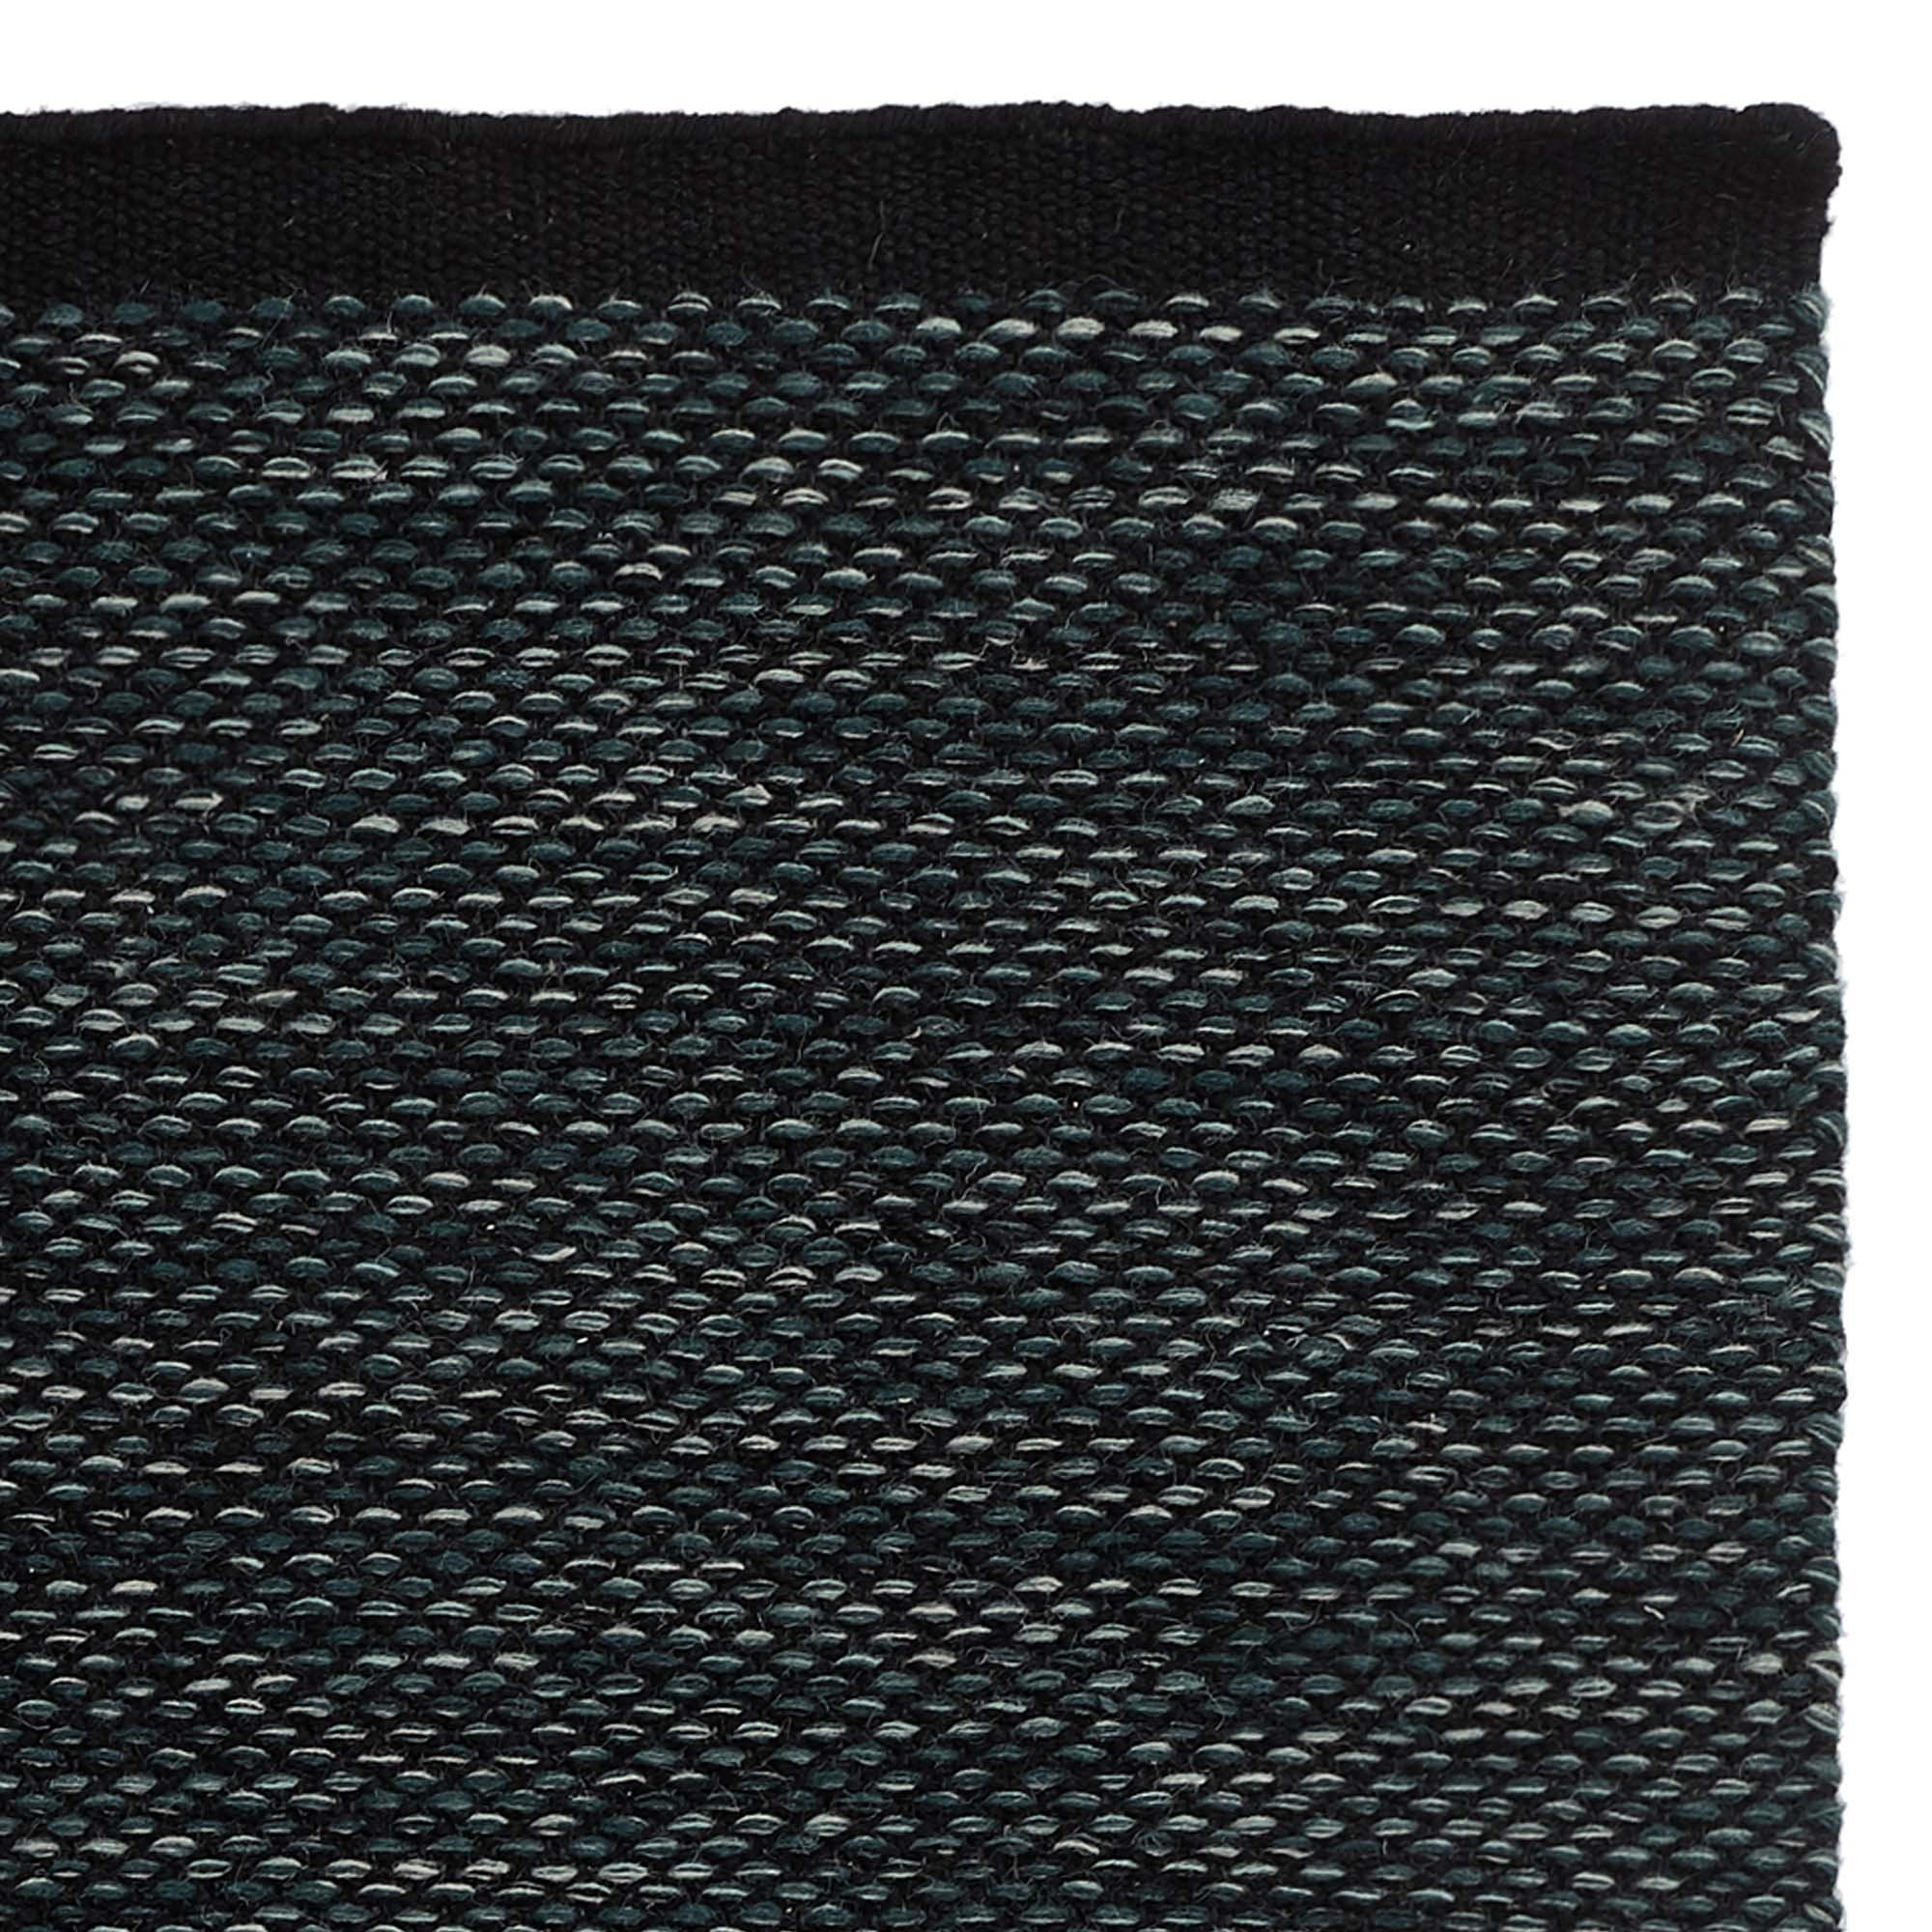 Odis rug, grey green & black, 87% new wool & 9% cotton & 4% polyester